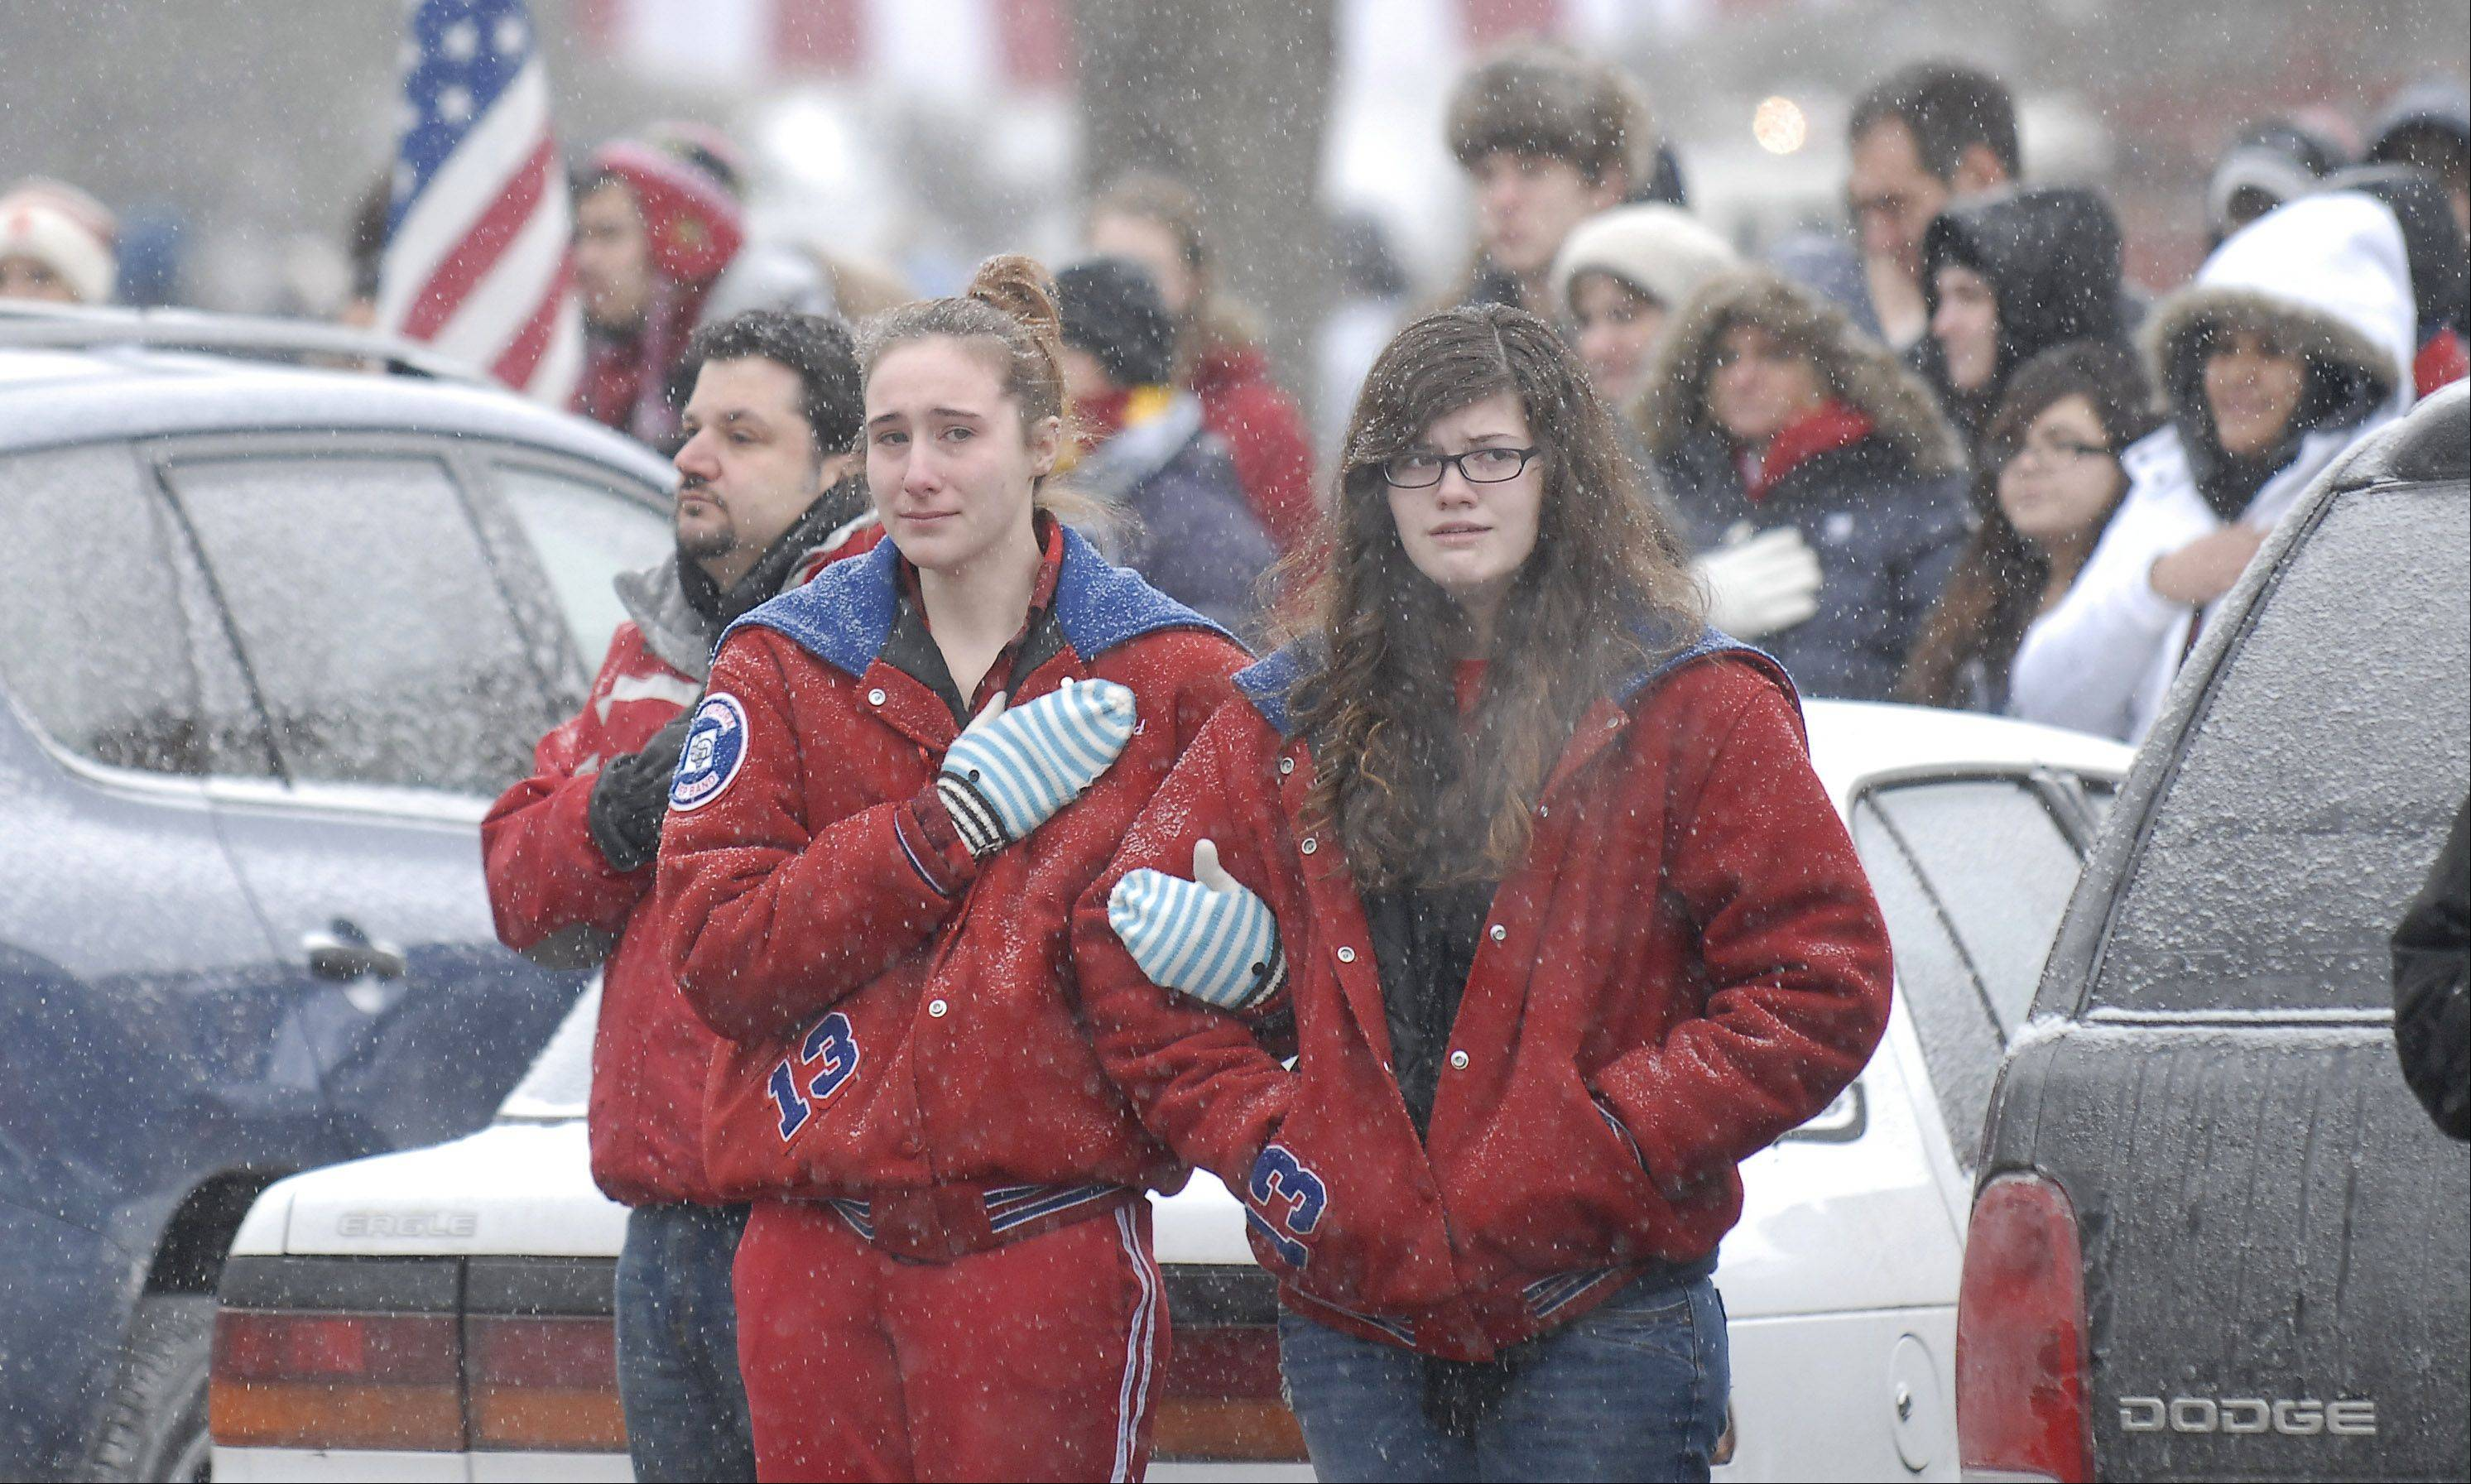 Students from West Aurora High School pay their respects to Spc. Christopher A. Patterson of North Aurora as the hearse carrying his body drives past the school Friday morning. Patterson, who graduated in 2009 from West High, was killed Jan. 6 in Afghanistan.